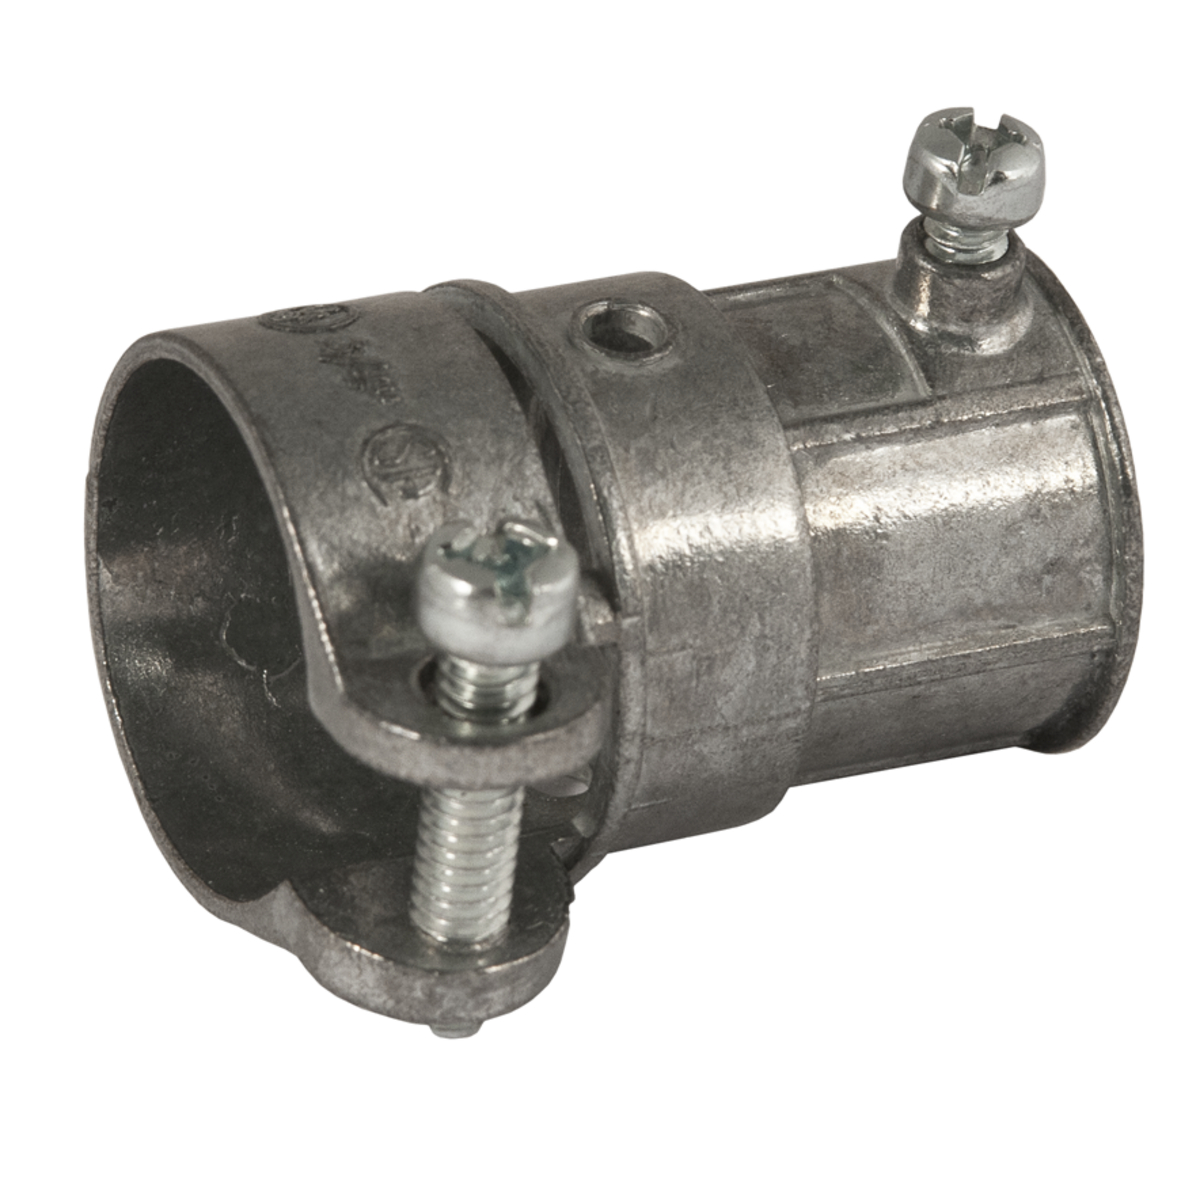 Hubbell-Raco 1853 Combination Coupling